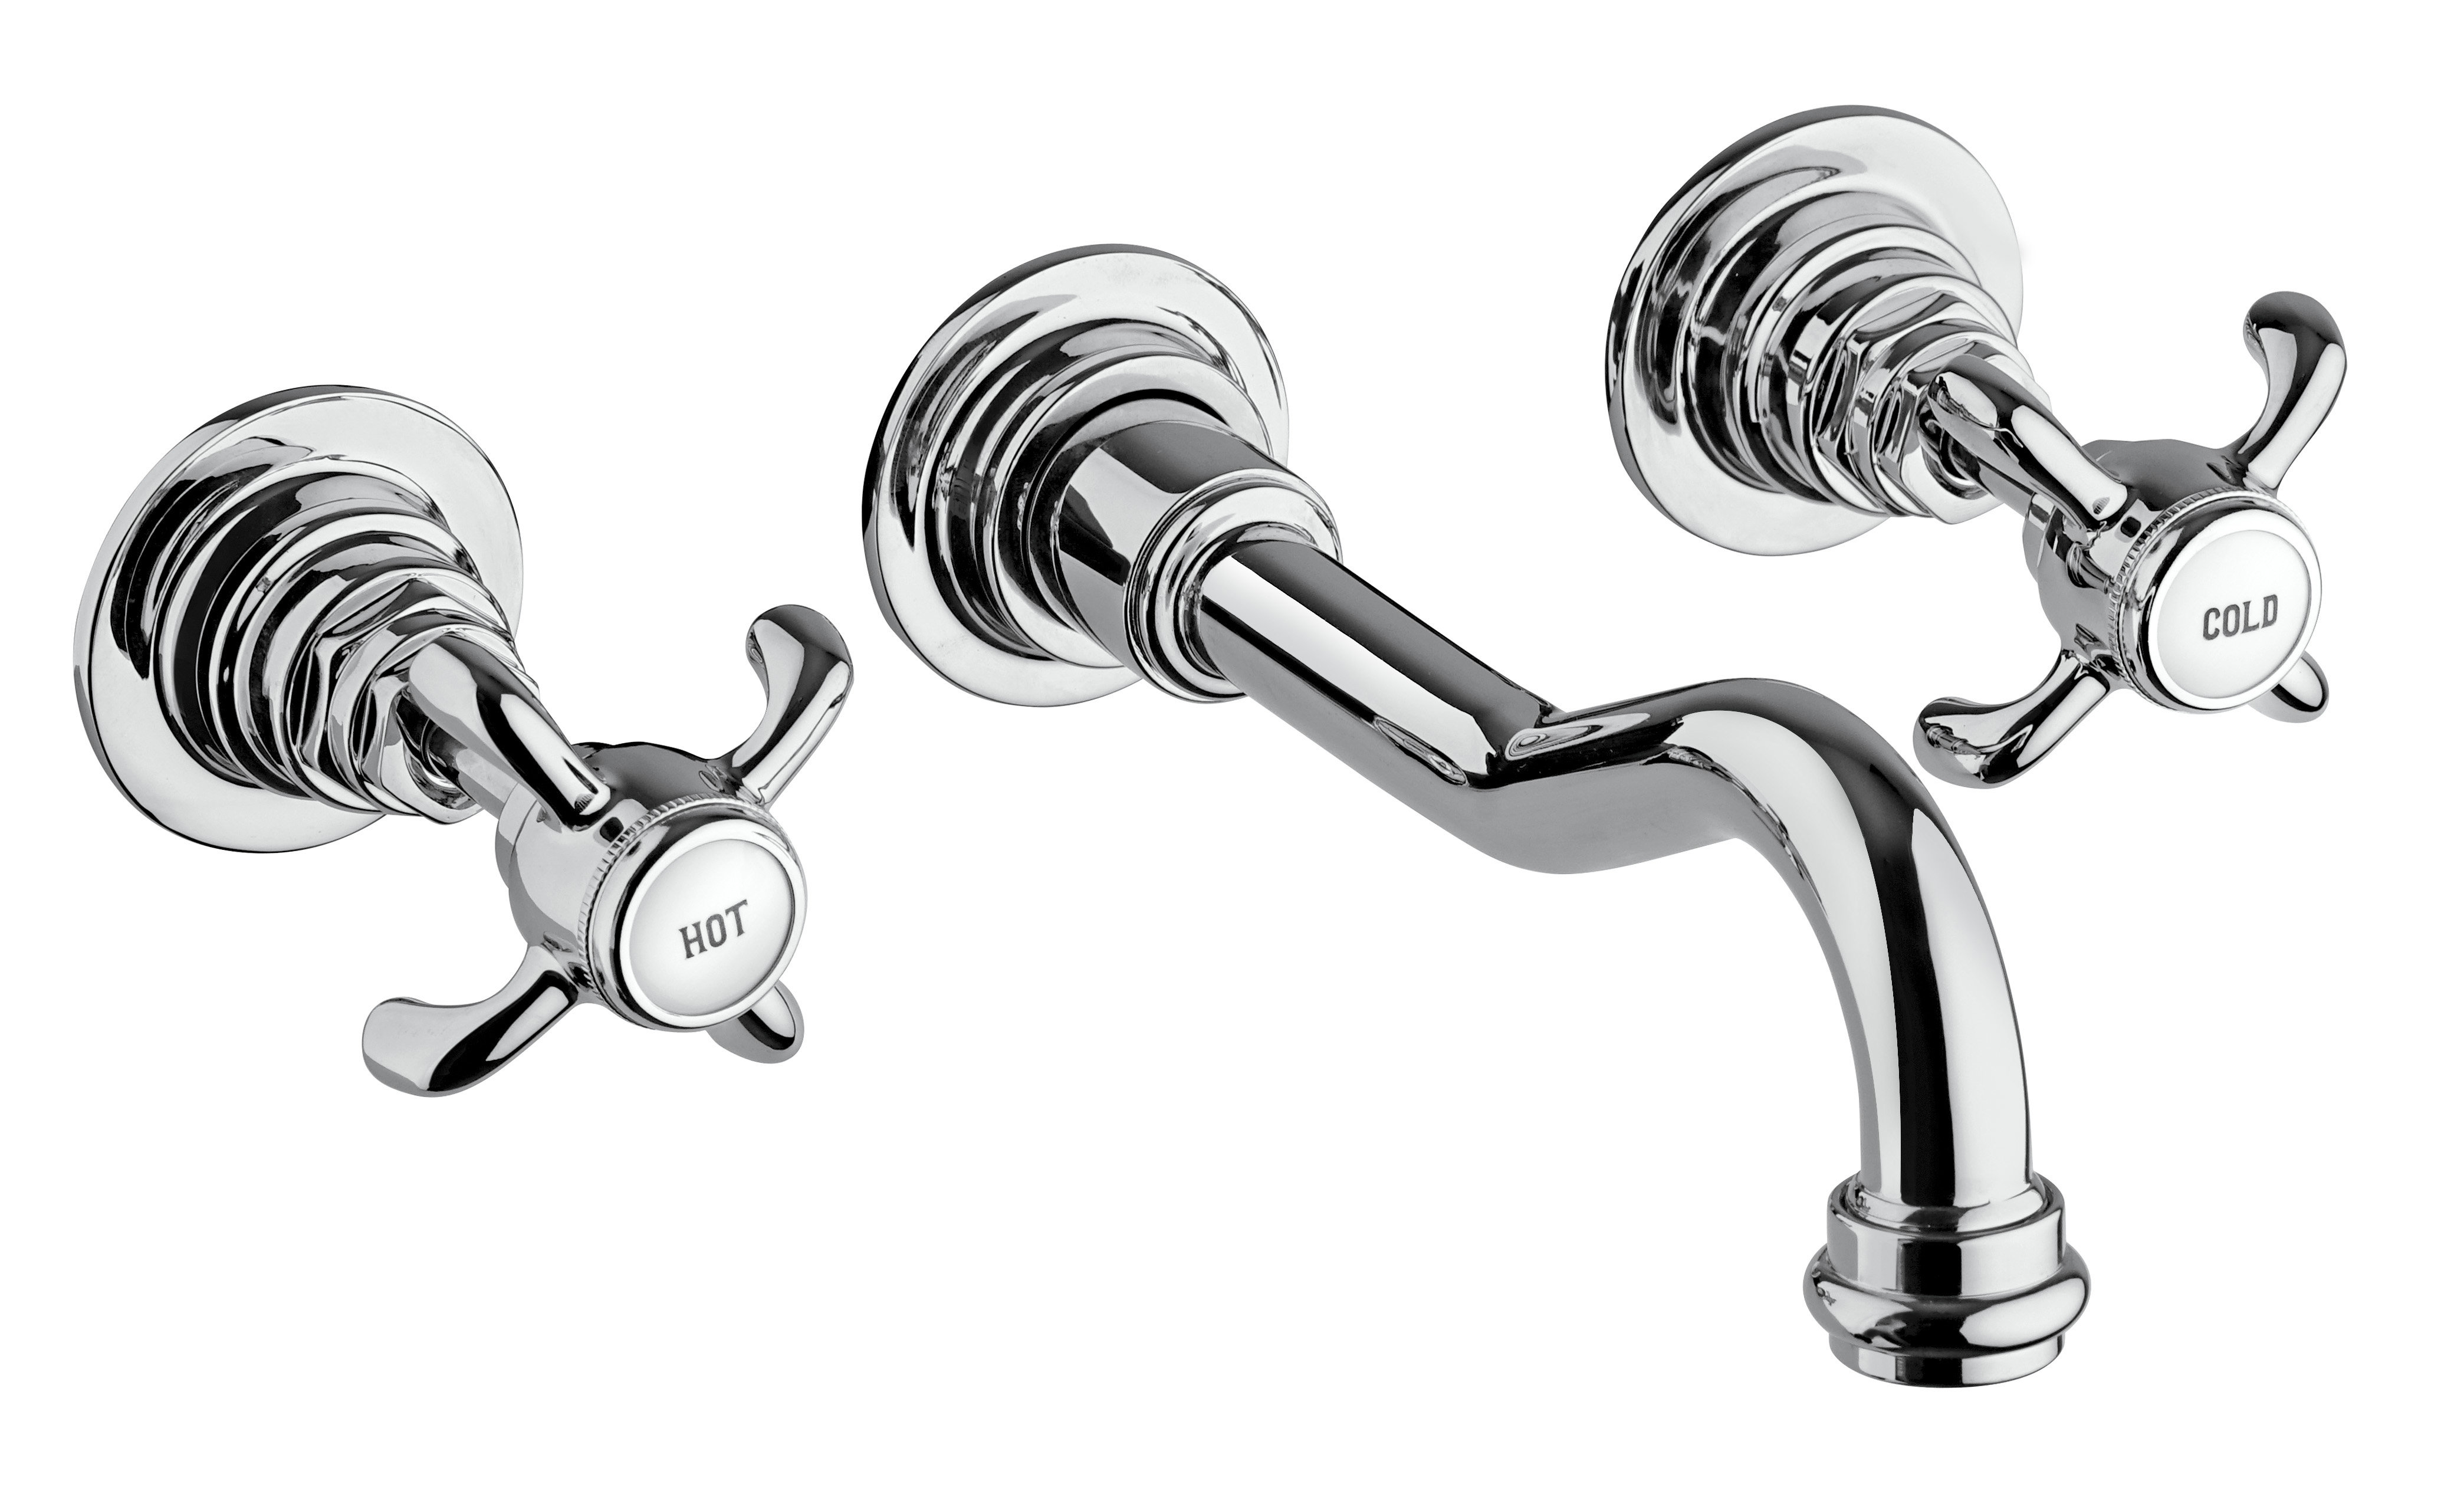 Wall-mount Lavatory Faucet with Cross Handles in Chrome